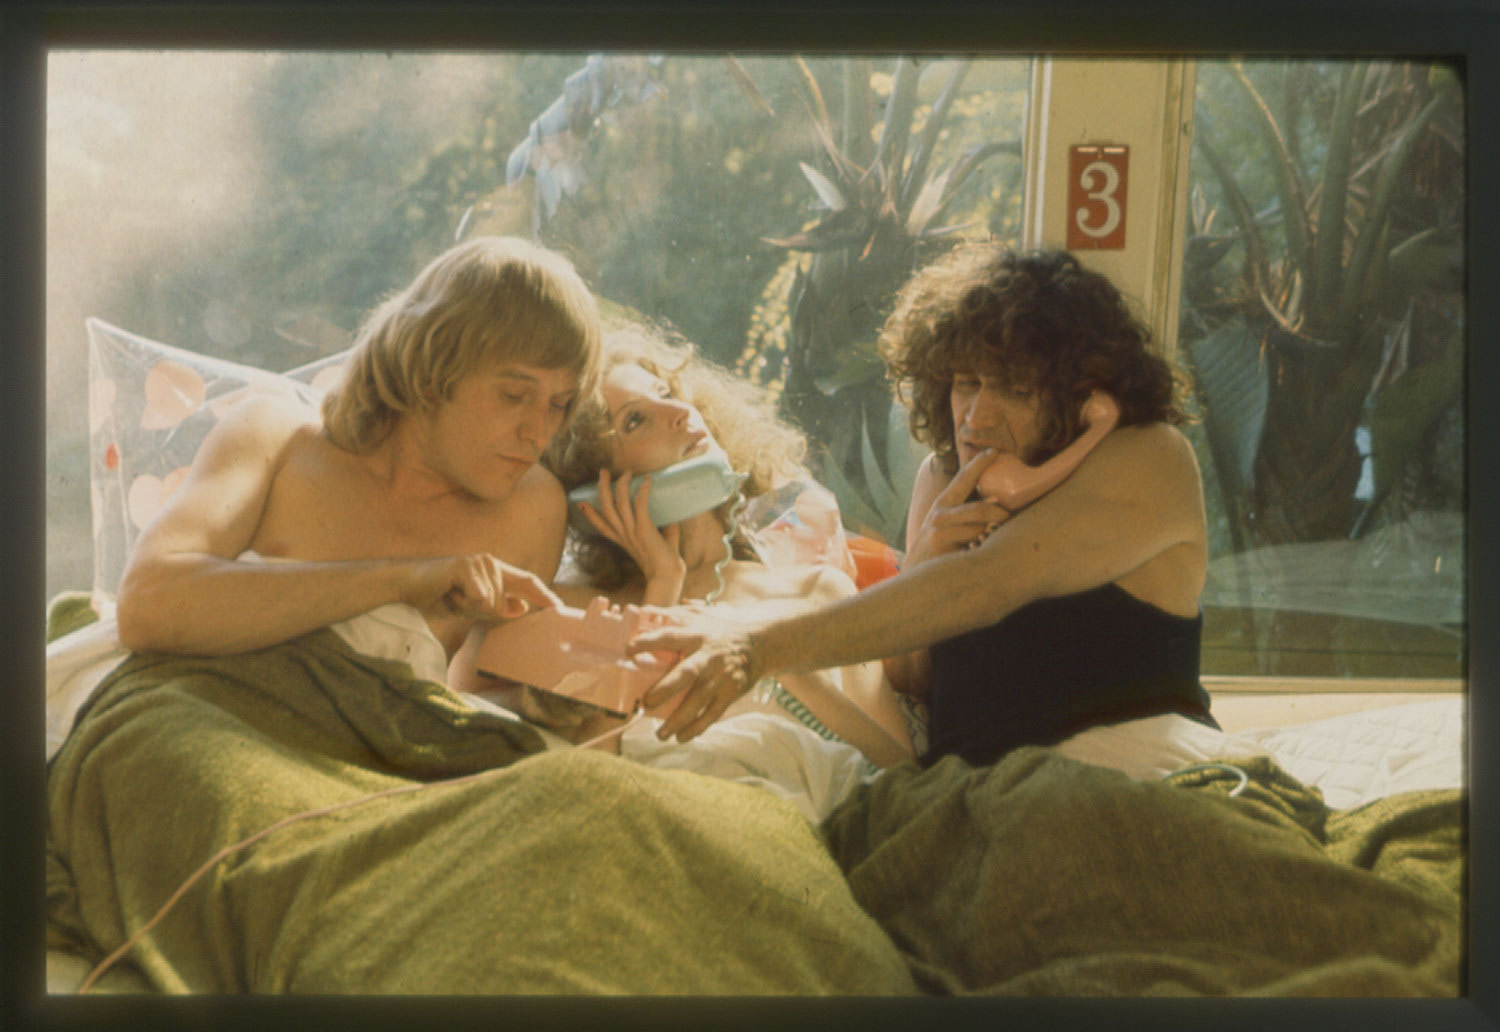 Agnès Varda, <em>Lion Love (...and Lies)</em>, 1969 (still). Color film in 35mm, 110 min. Courtesy Ciné-Tamaris.